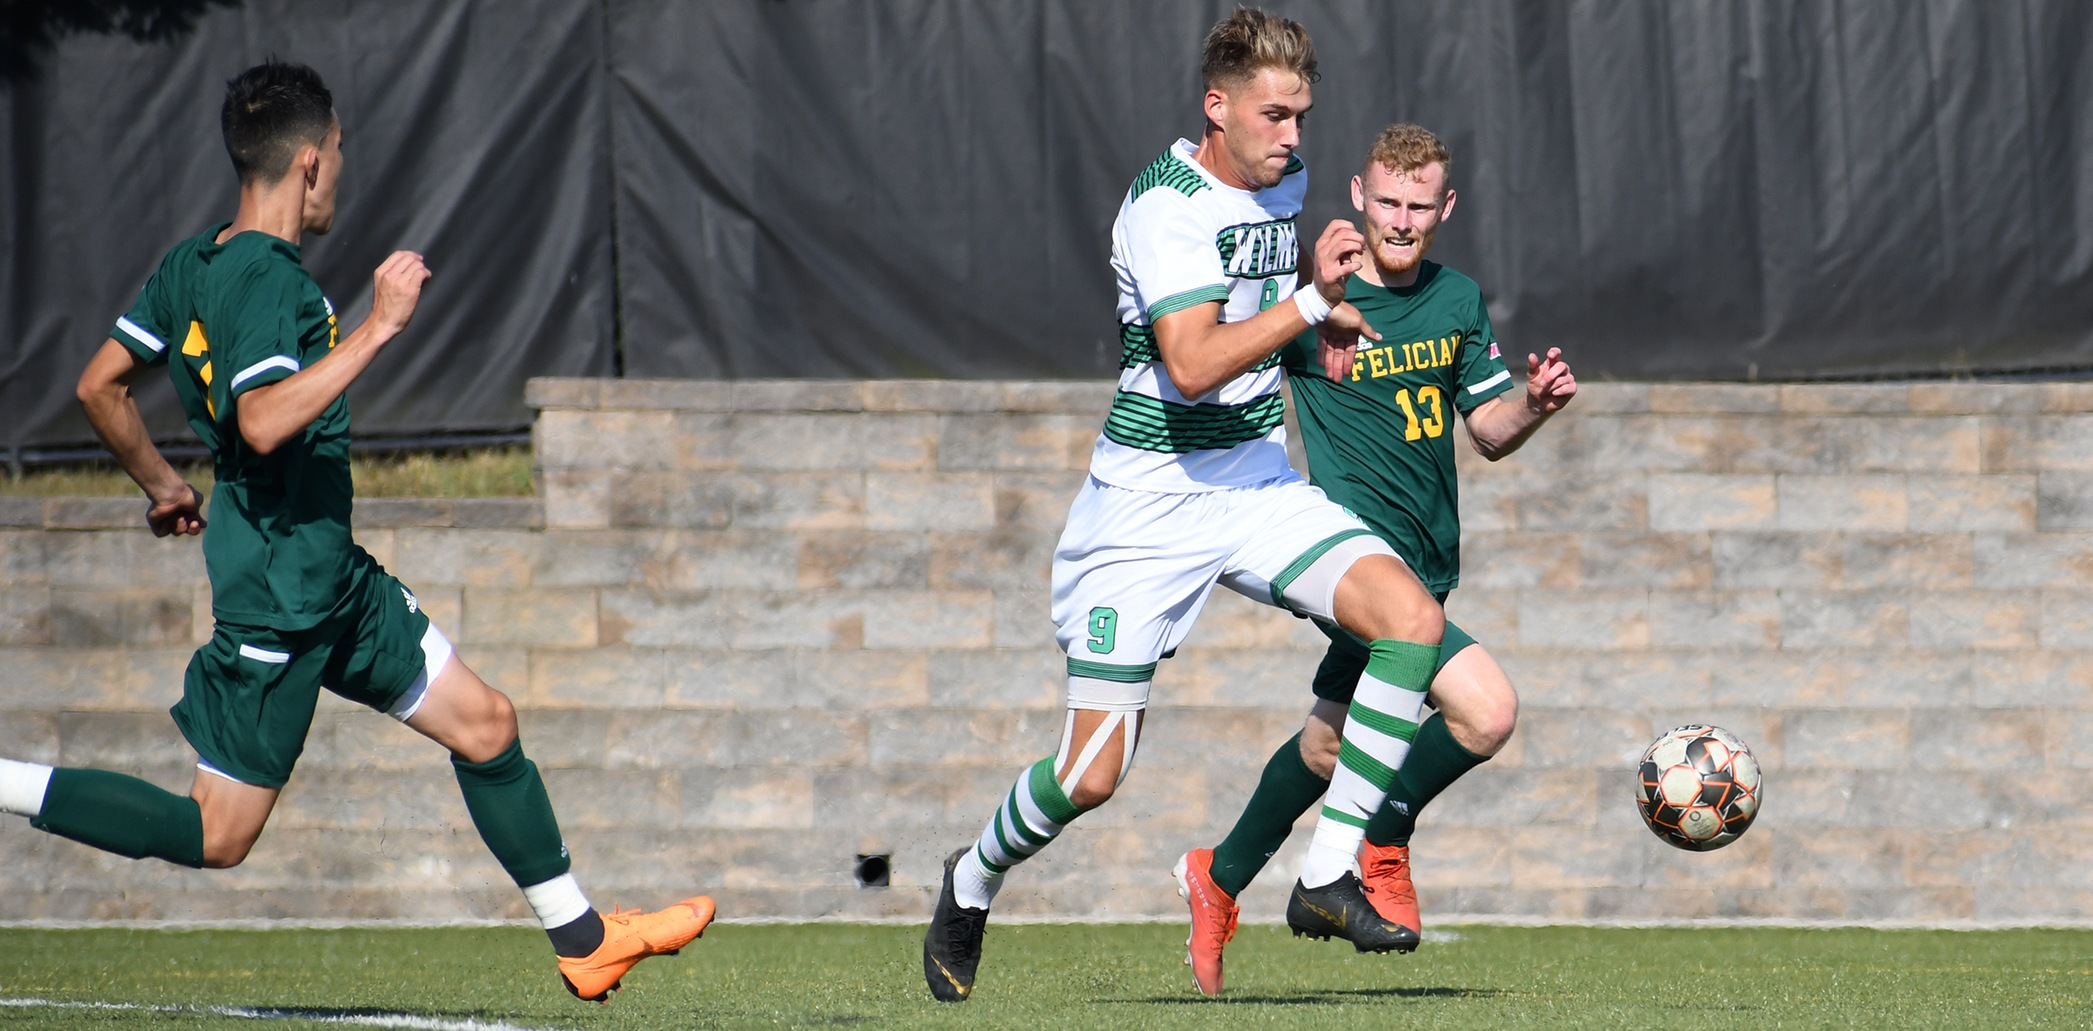 Wilmington University's player Lorne Bickley (9) controls the ball as Felician College players Dean Wright (13) and Jorge Zerna (7) follow the play during the Men's NCAA division II soccer match at the Wilmington University sports complex, Saturday September 21, 2019. Photo by Keyana Ringgold